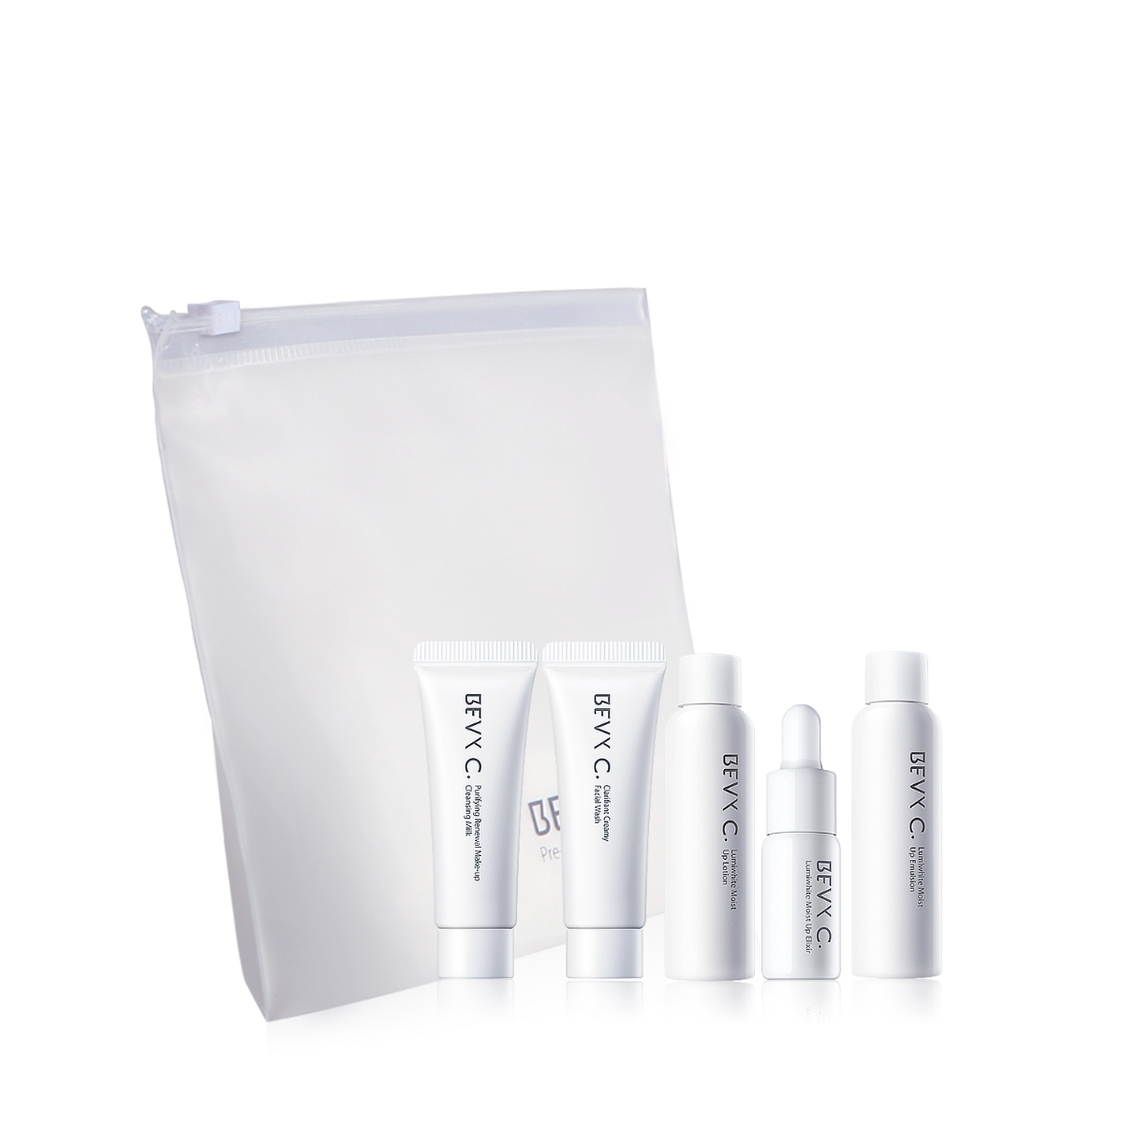 Lumiwhite Moist Travel Kit